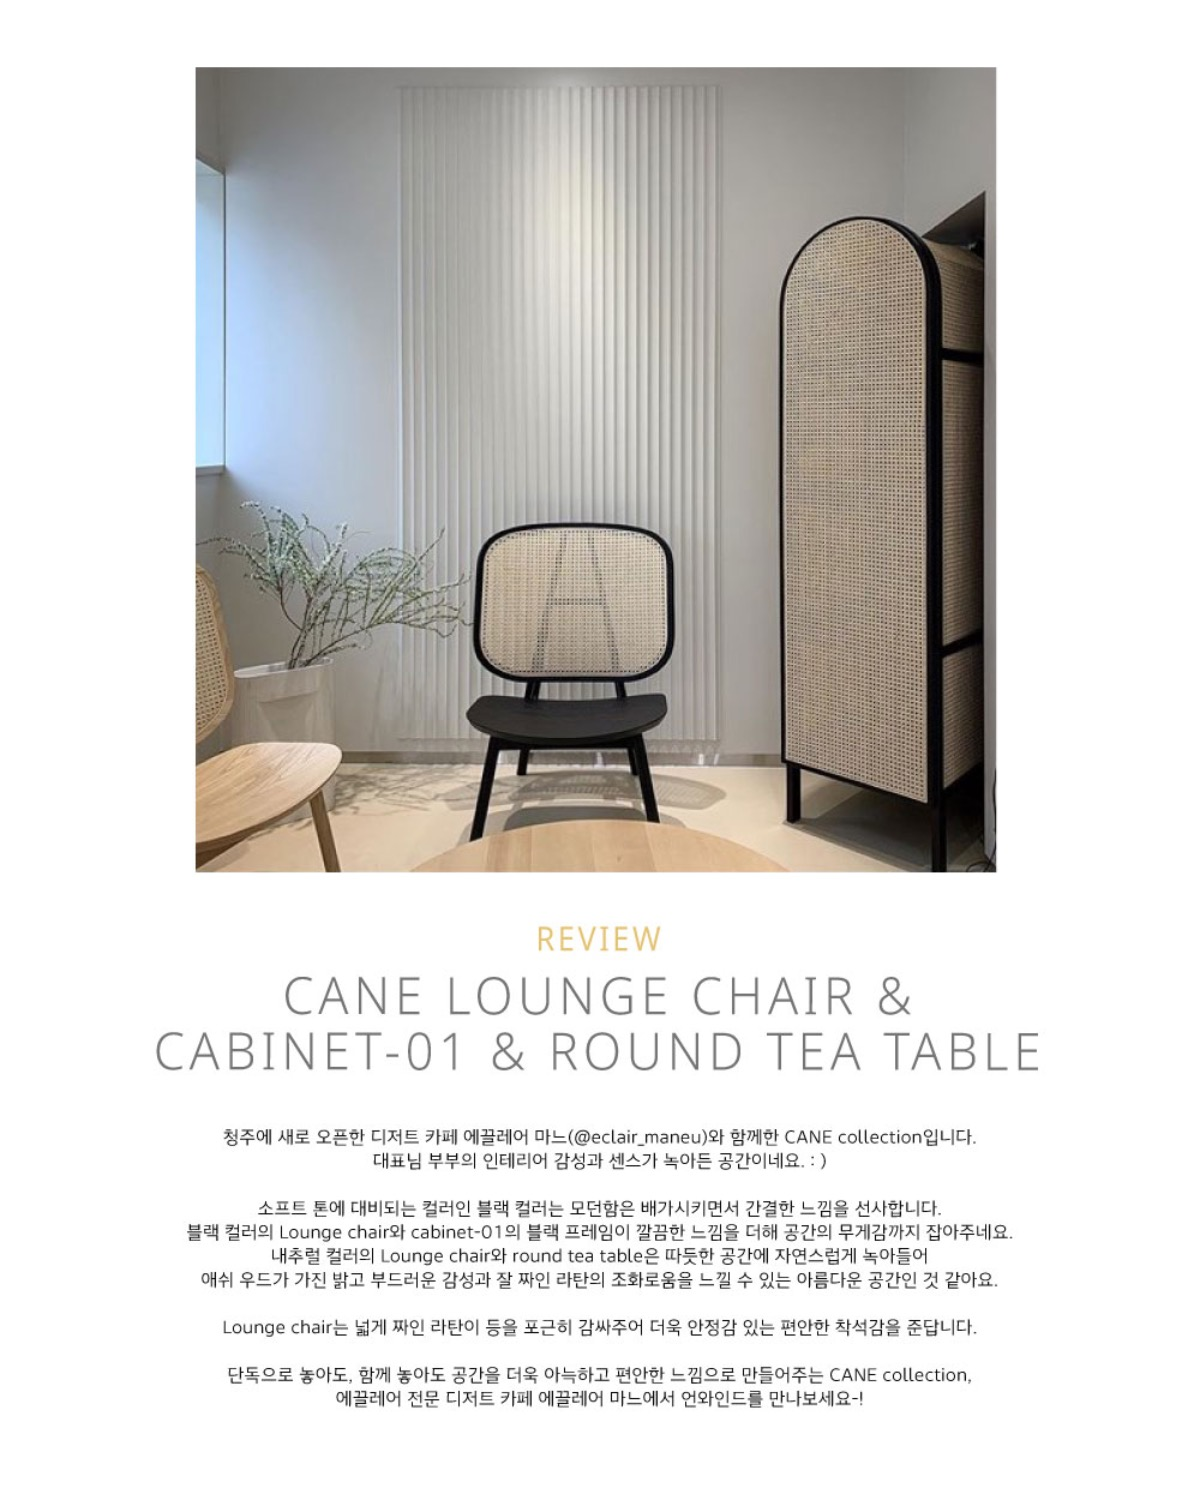 CANE lounge chair & cabinet-01